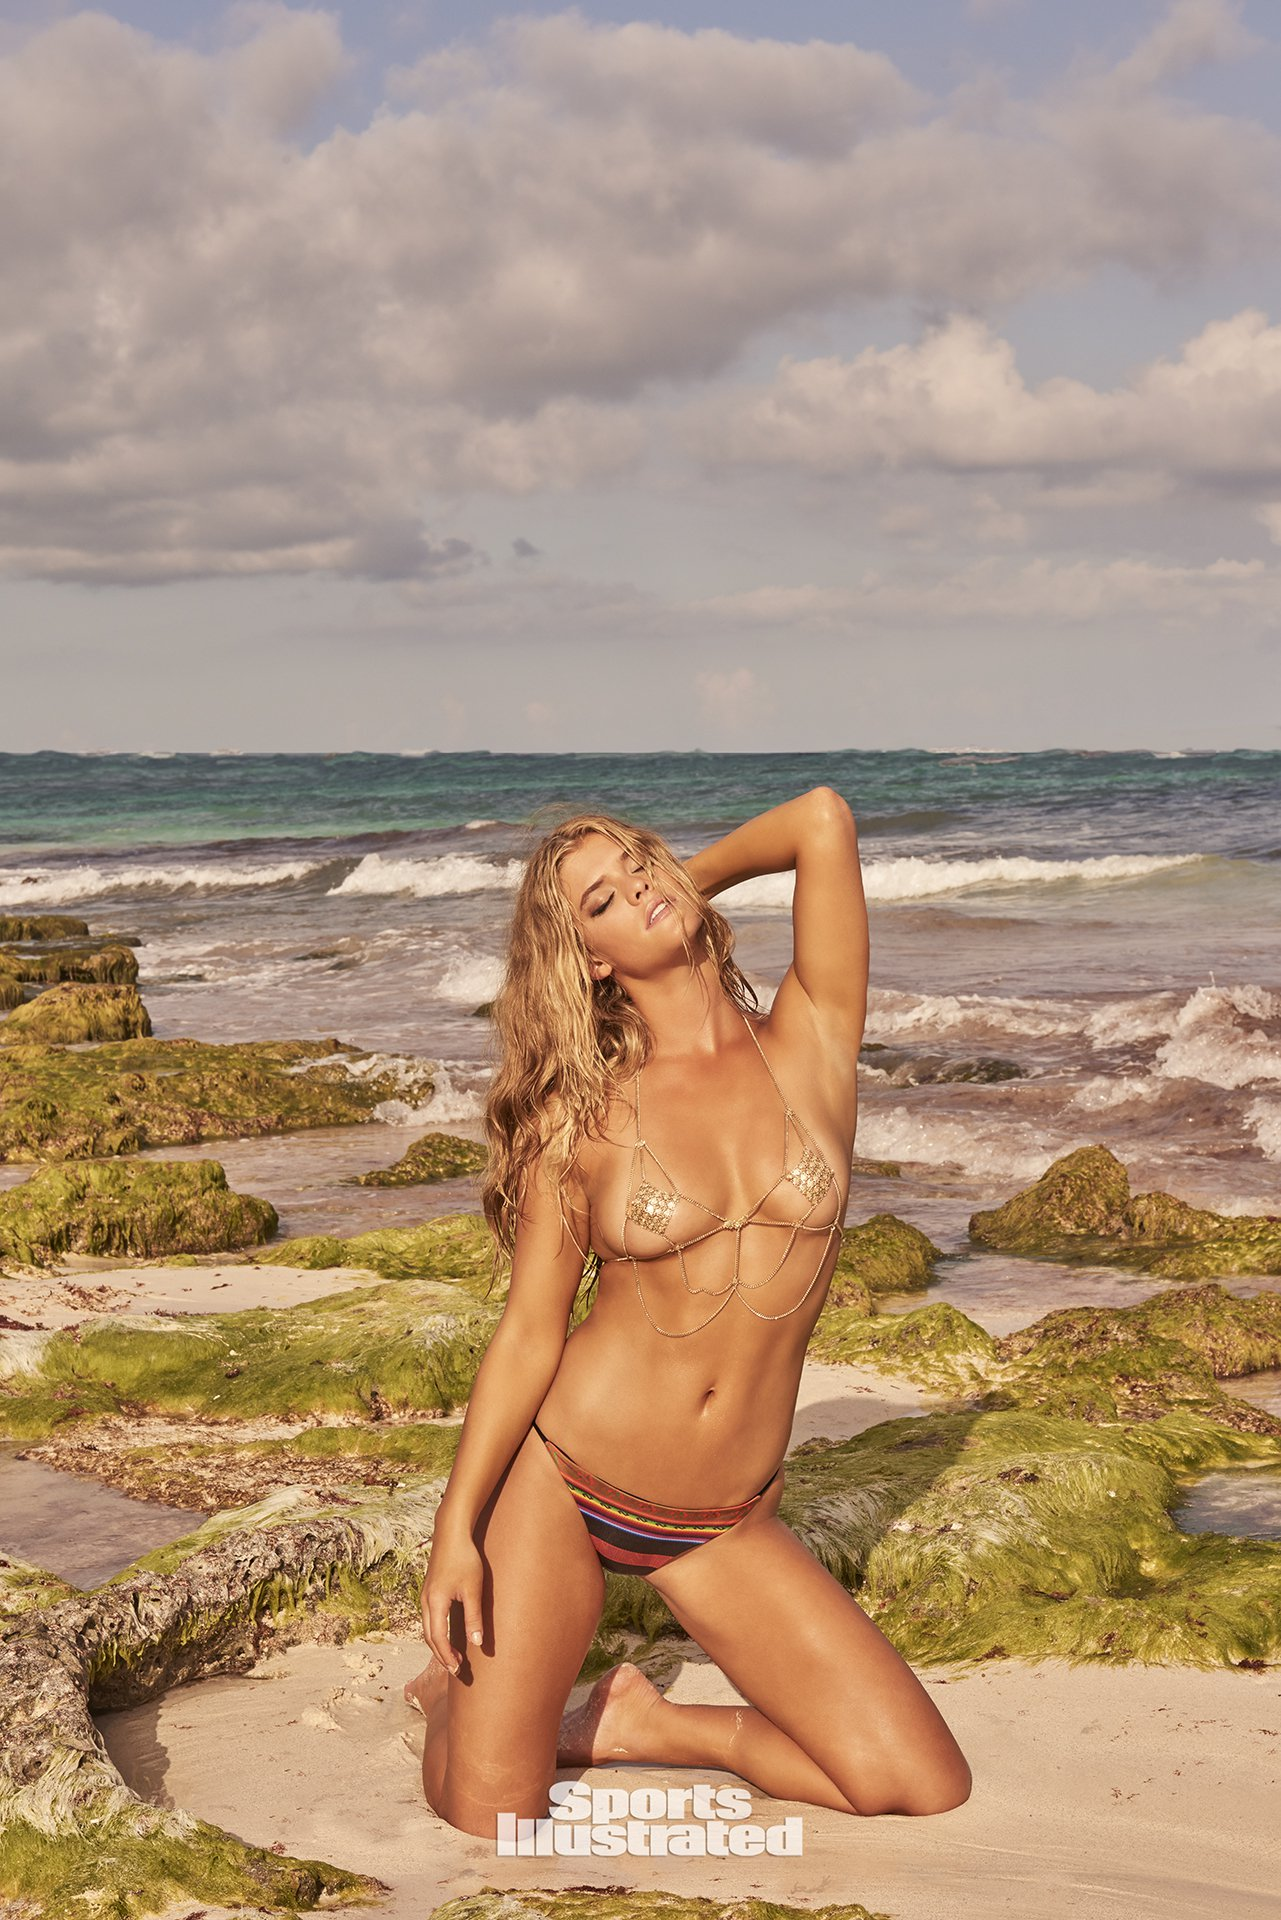 ... Nina Agdal – Sports Illustrated Swimsuit 2017 Photoshoot Outtakes